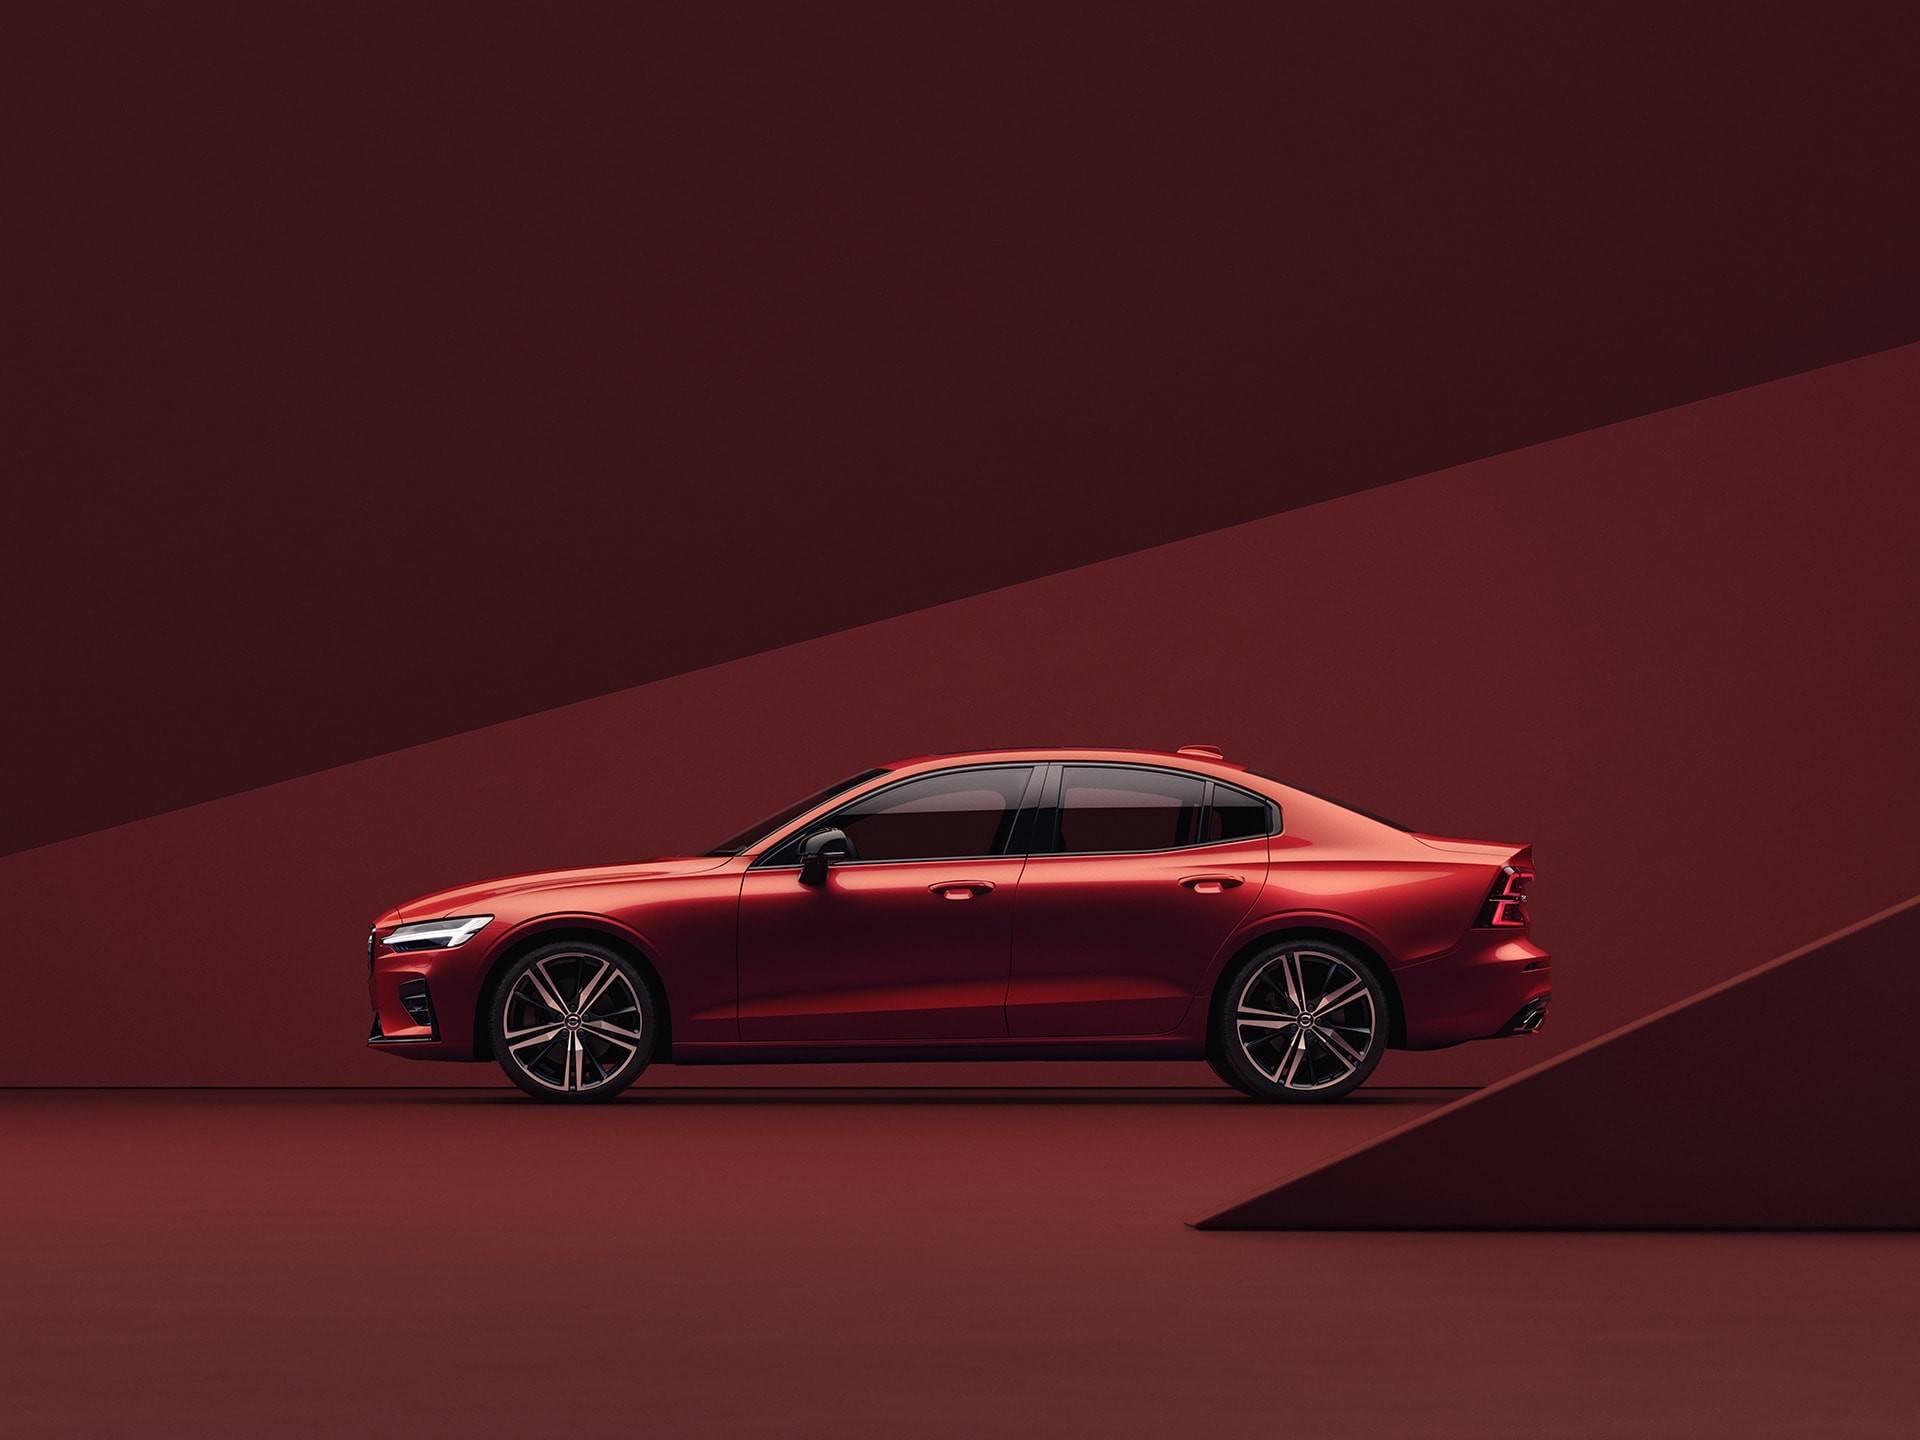 A red Volvo S60, parked in a red surrounding